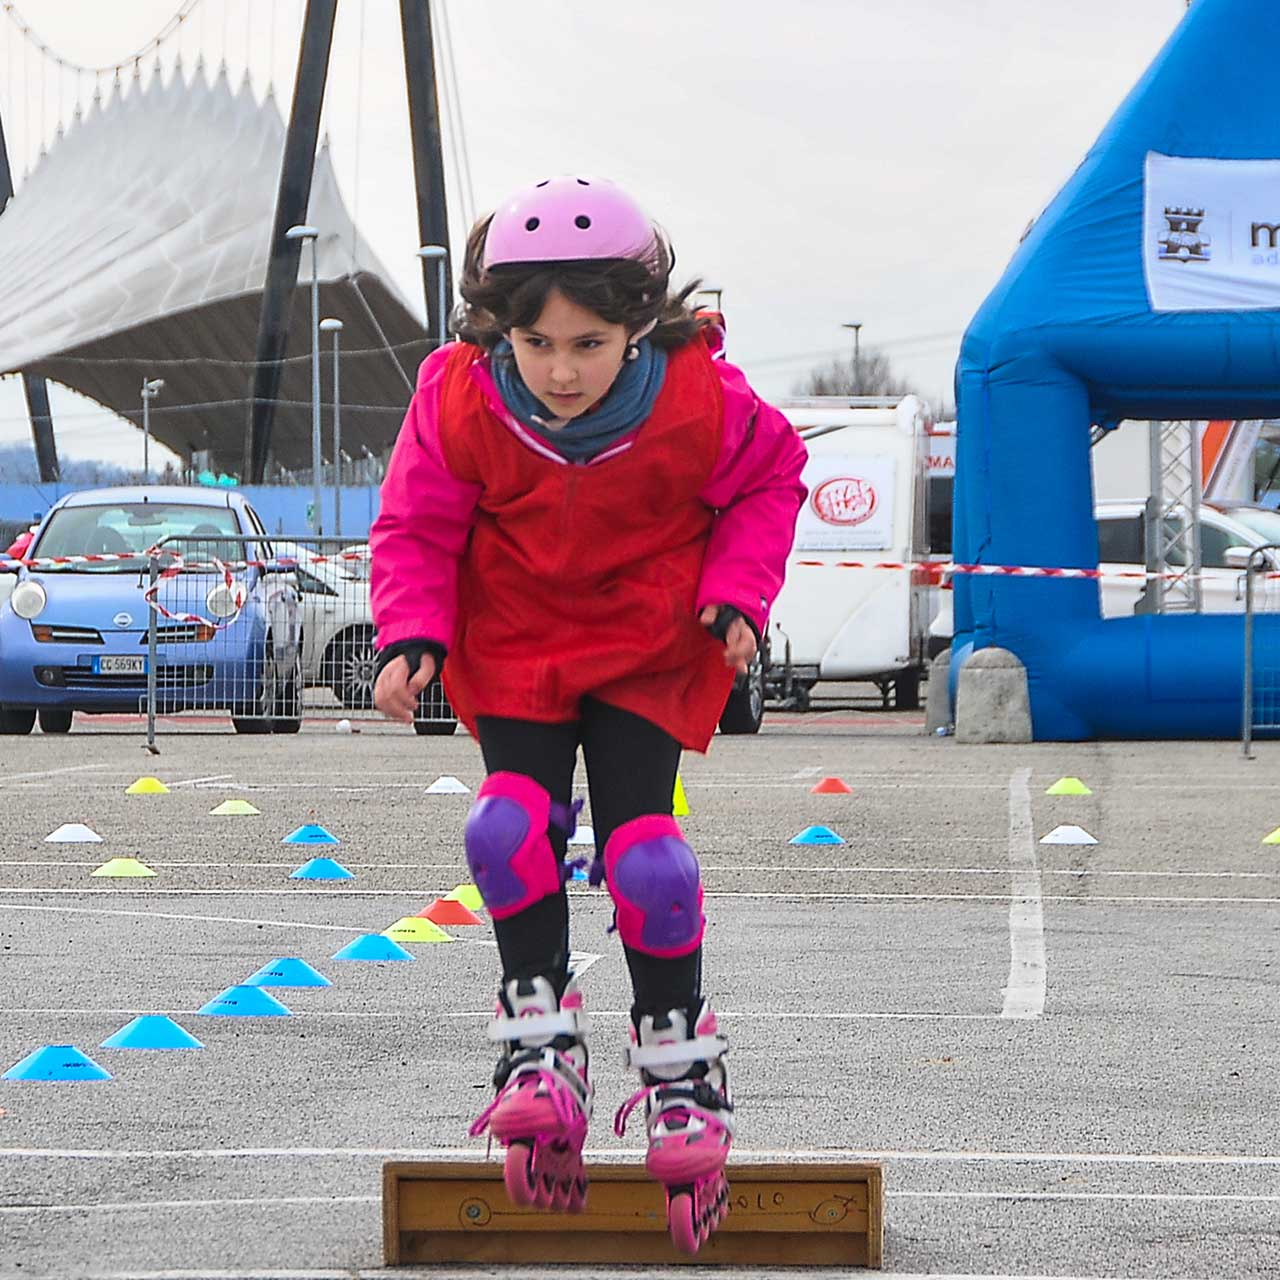 MWC-skating-race-2020_rollercross